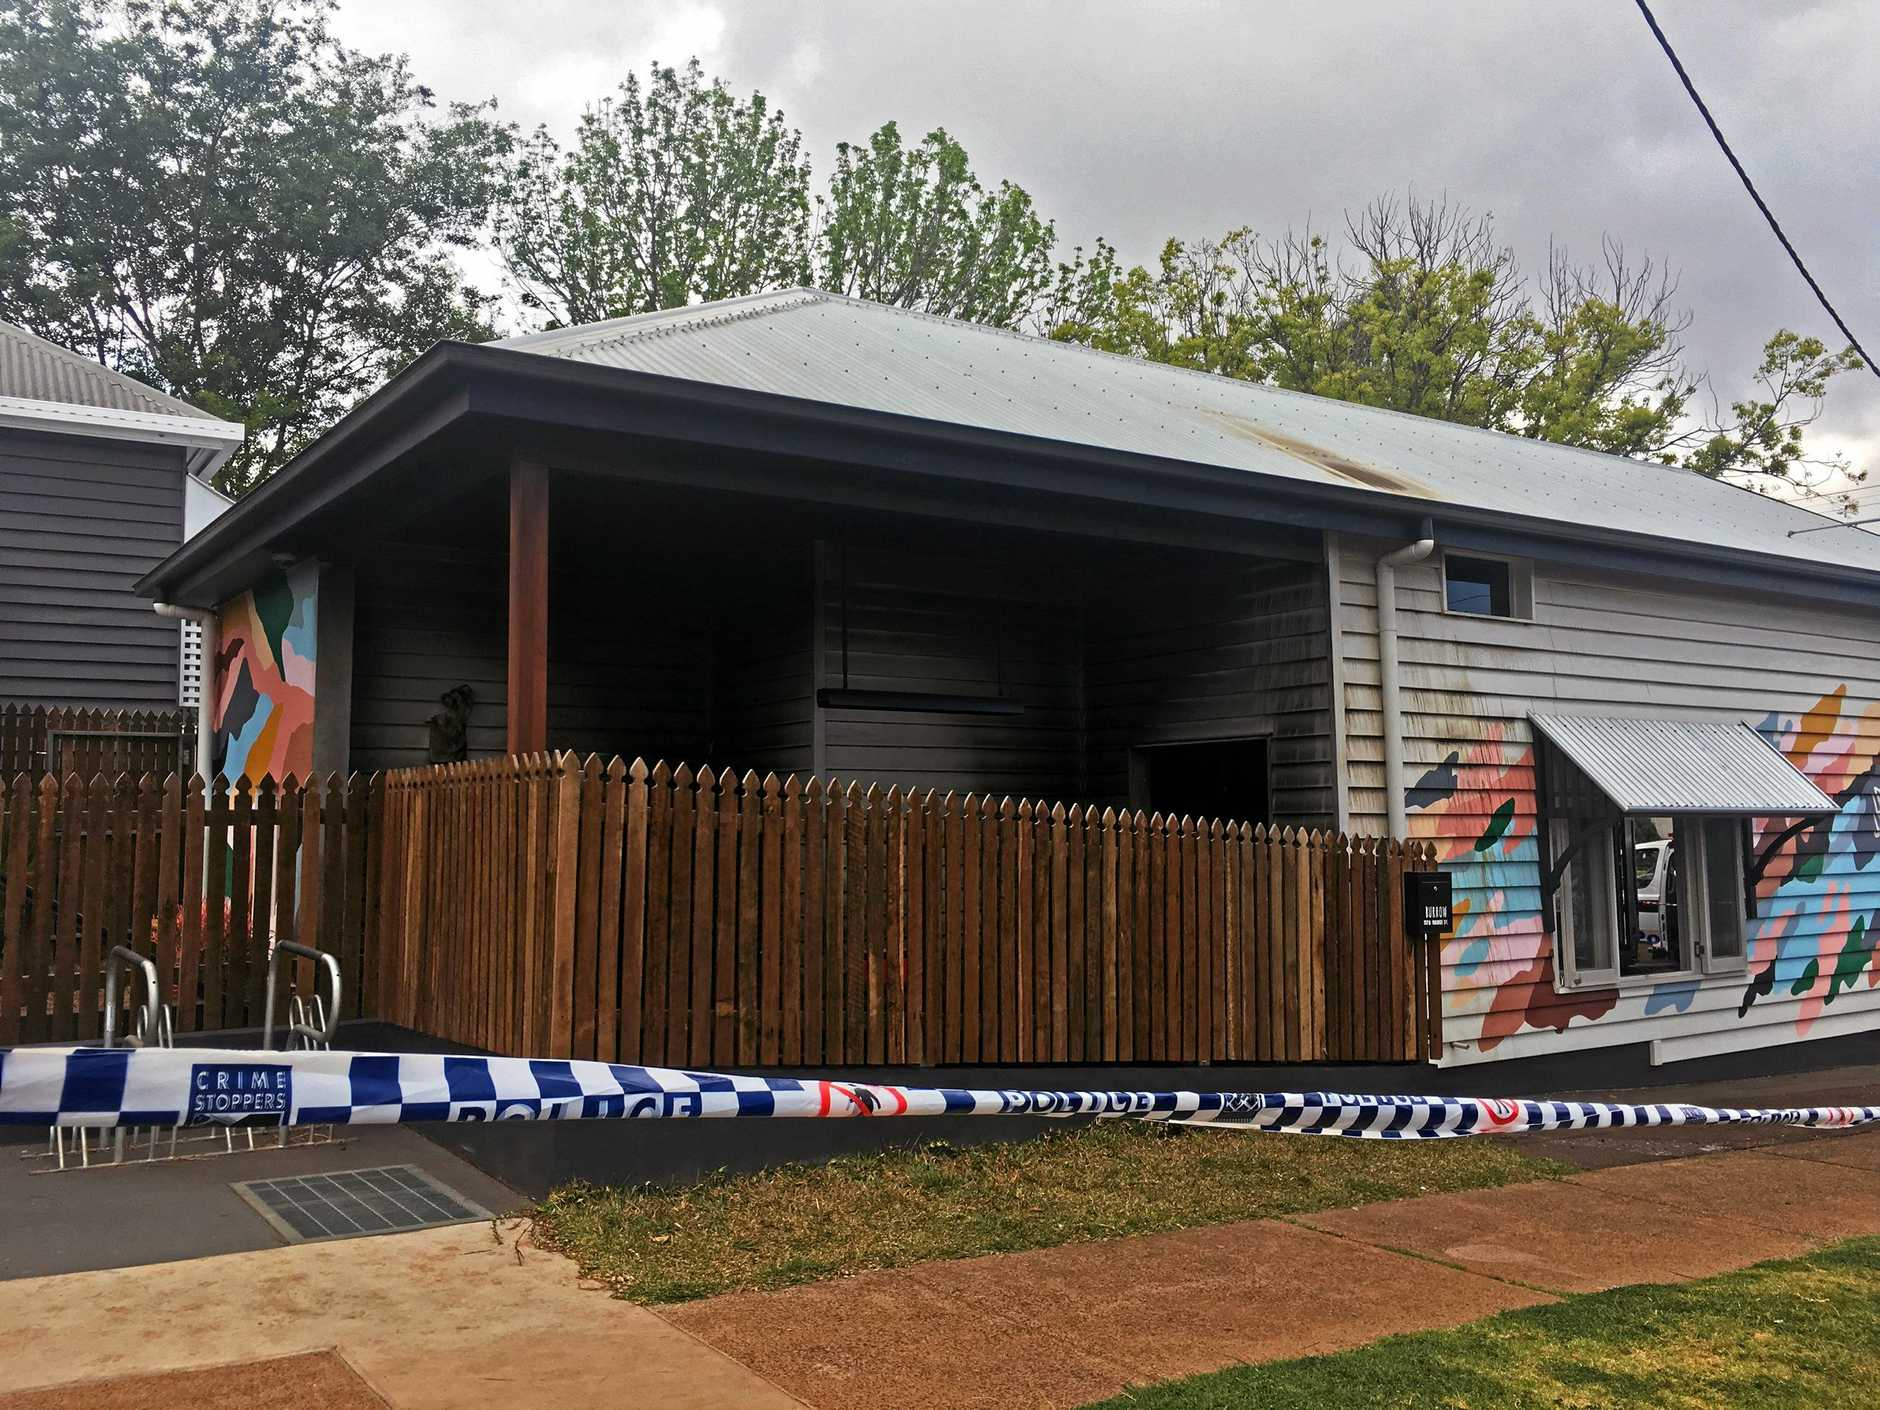 INVESTIGATIONS CONTINUE: Burrow cafe will remain closed until further notice as police hunt for information on the suspicious fire.